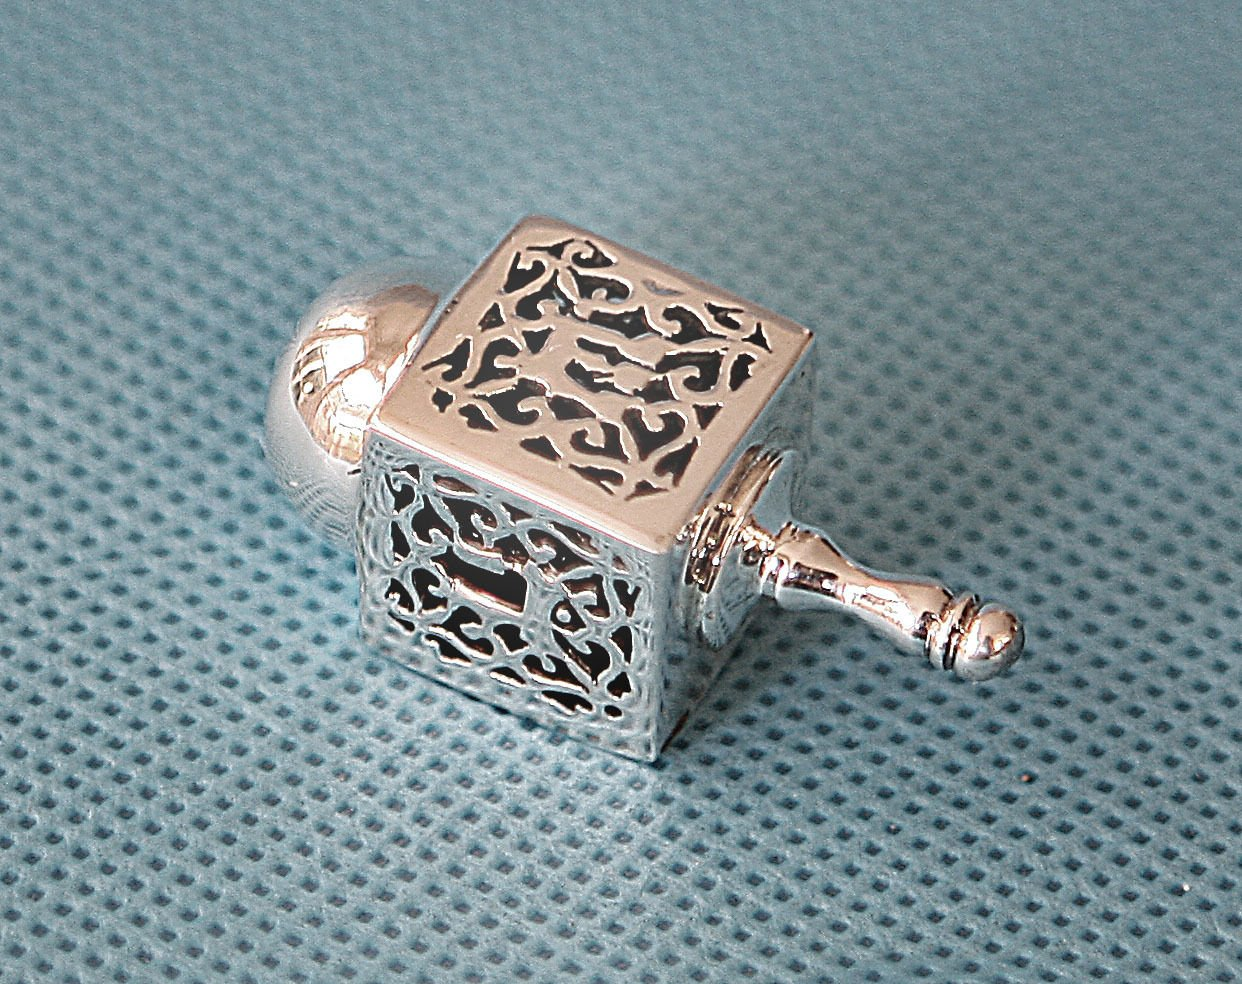 Hanukkah Chanukkah Dreidel Collector's Beautiful Unique 925 Silver Ornate Filigree Design, Hand Made , Size: 1.75'' x 0.75'' . Spinning Top . Perfect & Great Gift for Hanukkah Collectors Kids Housewarming Birthday